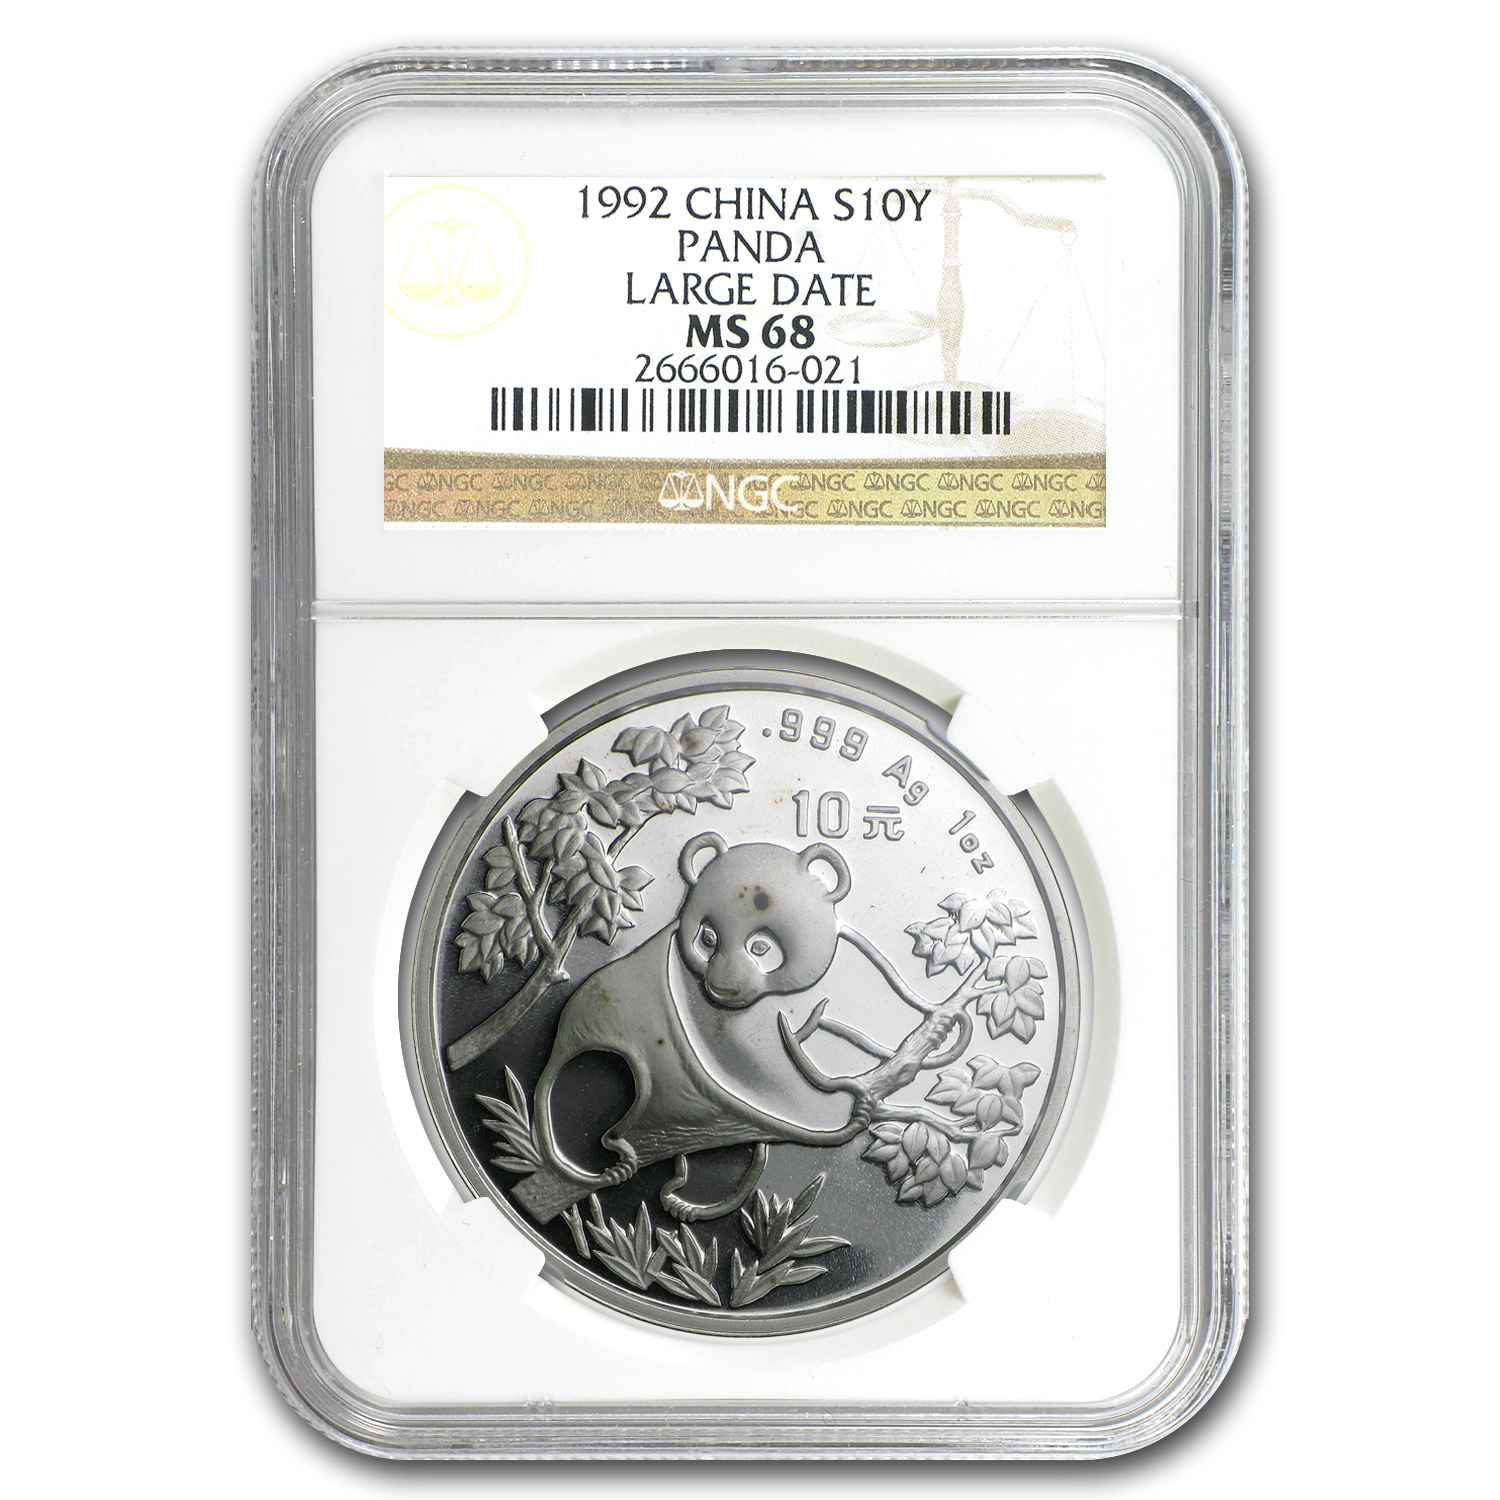 1992 Silver Chinese Panda 1 oz - MS-68 NGC - (Large Date)